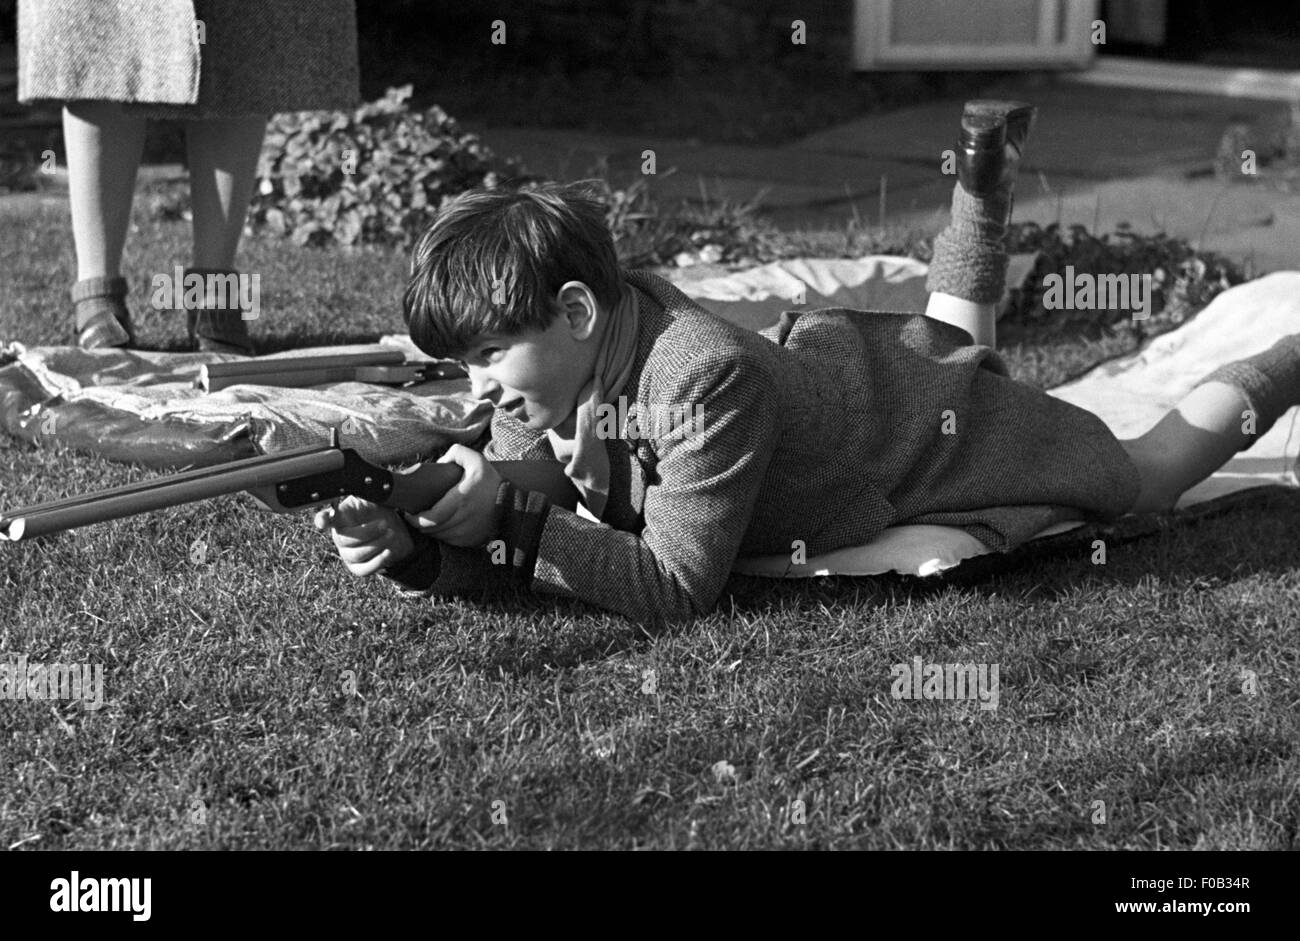 A young man with a rifle taking aim down the garden. - Stock Image